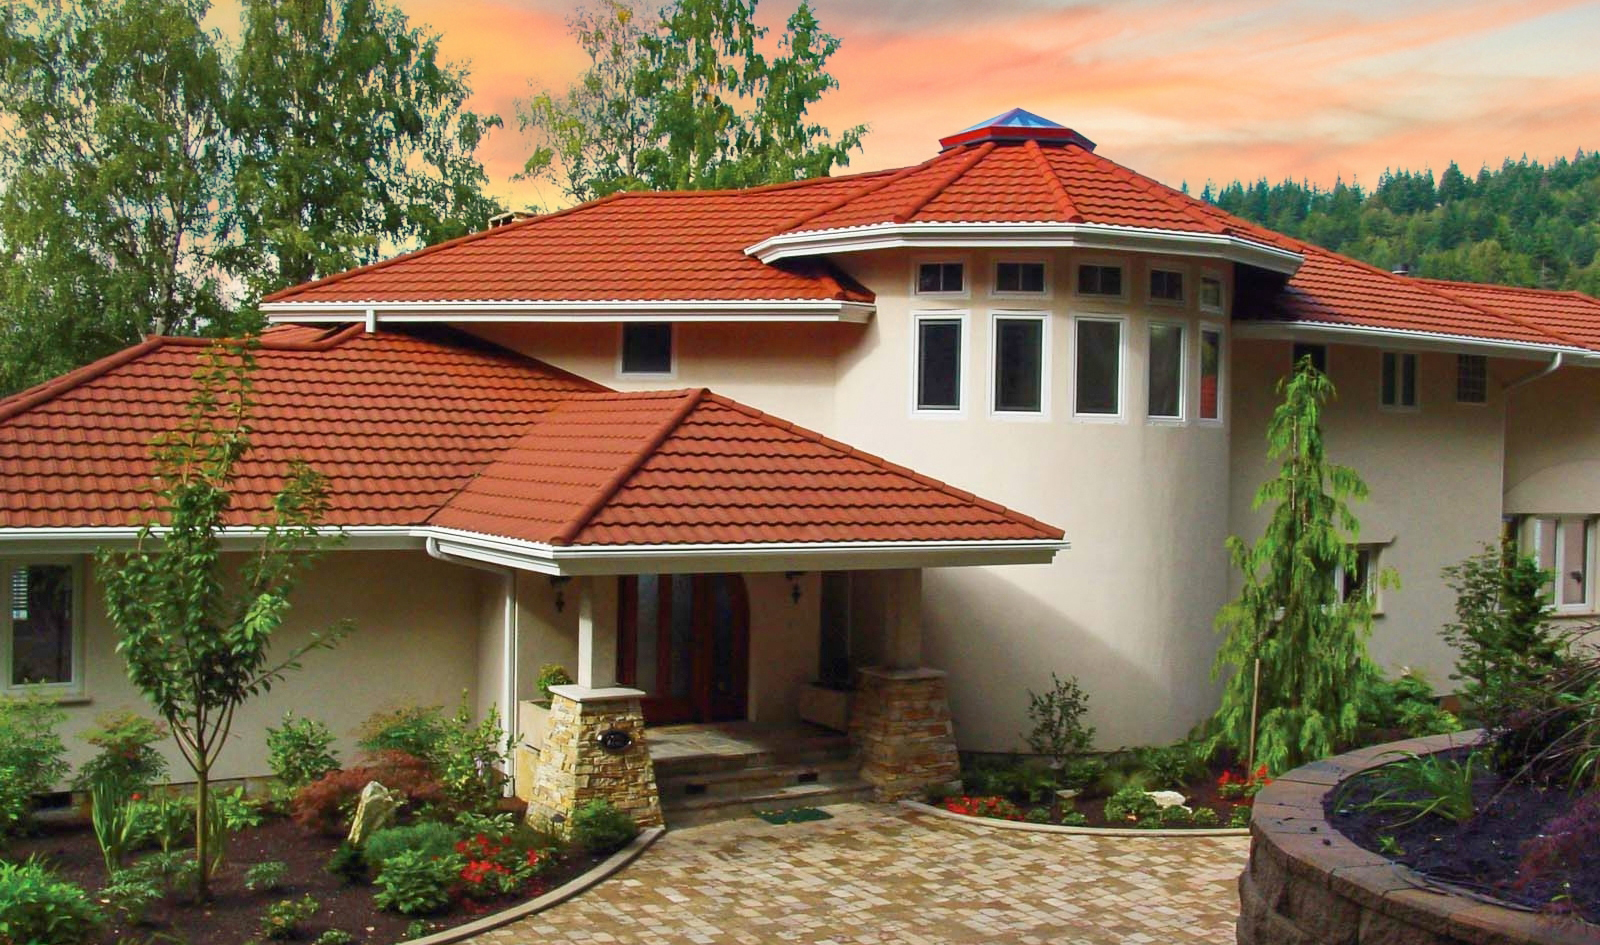 10 Things to Know About Metal Roofing